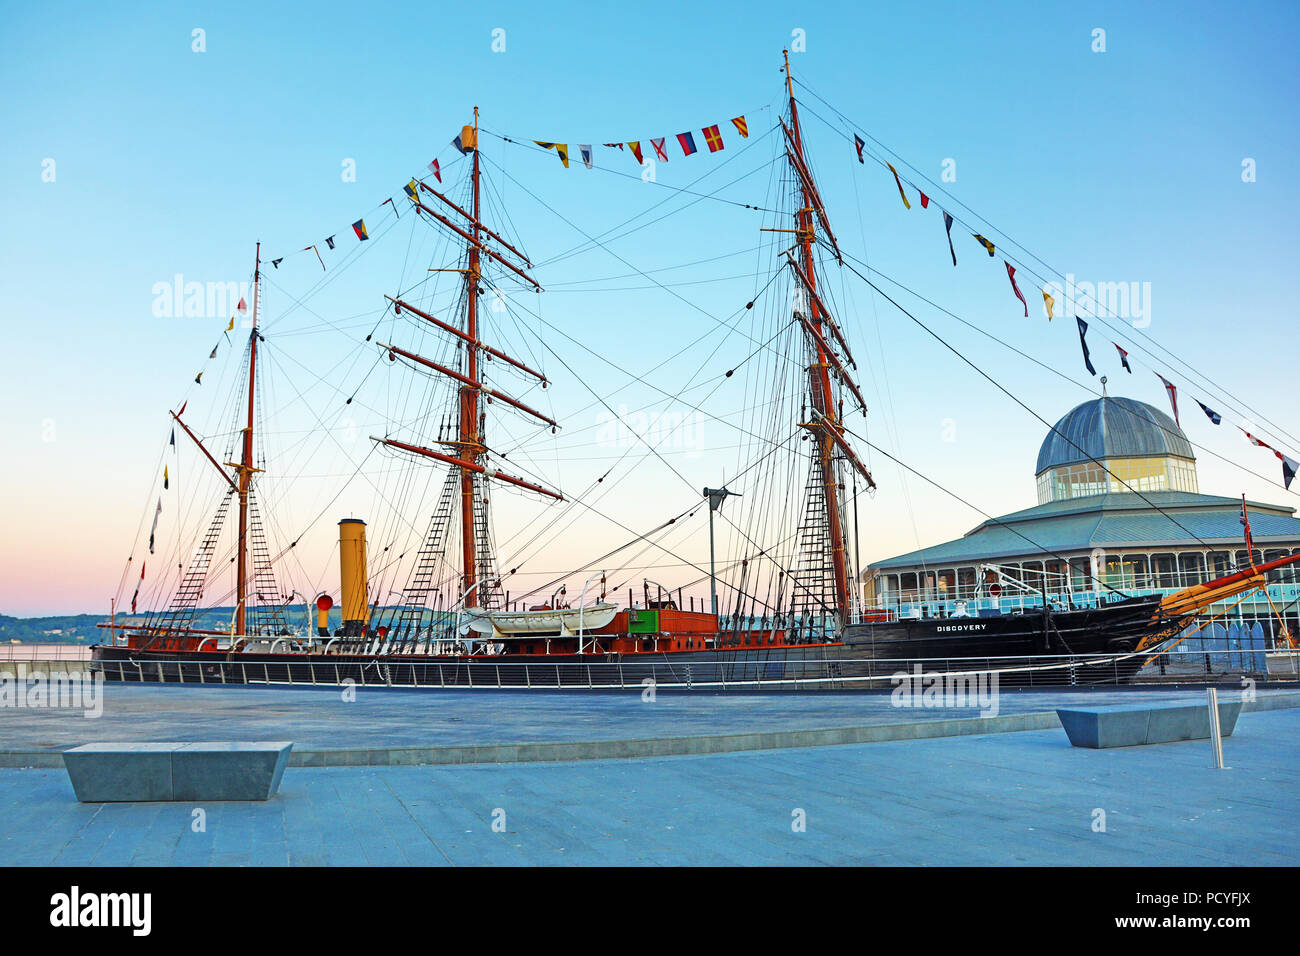 RRS Discovery polar exploration ship at Discovery Point, Dundee, Scotland - Stock Image